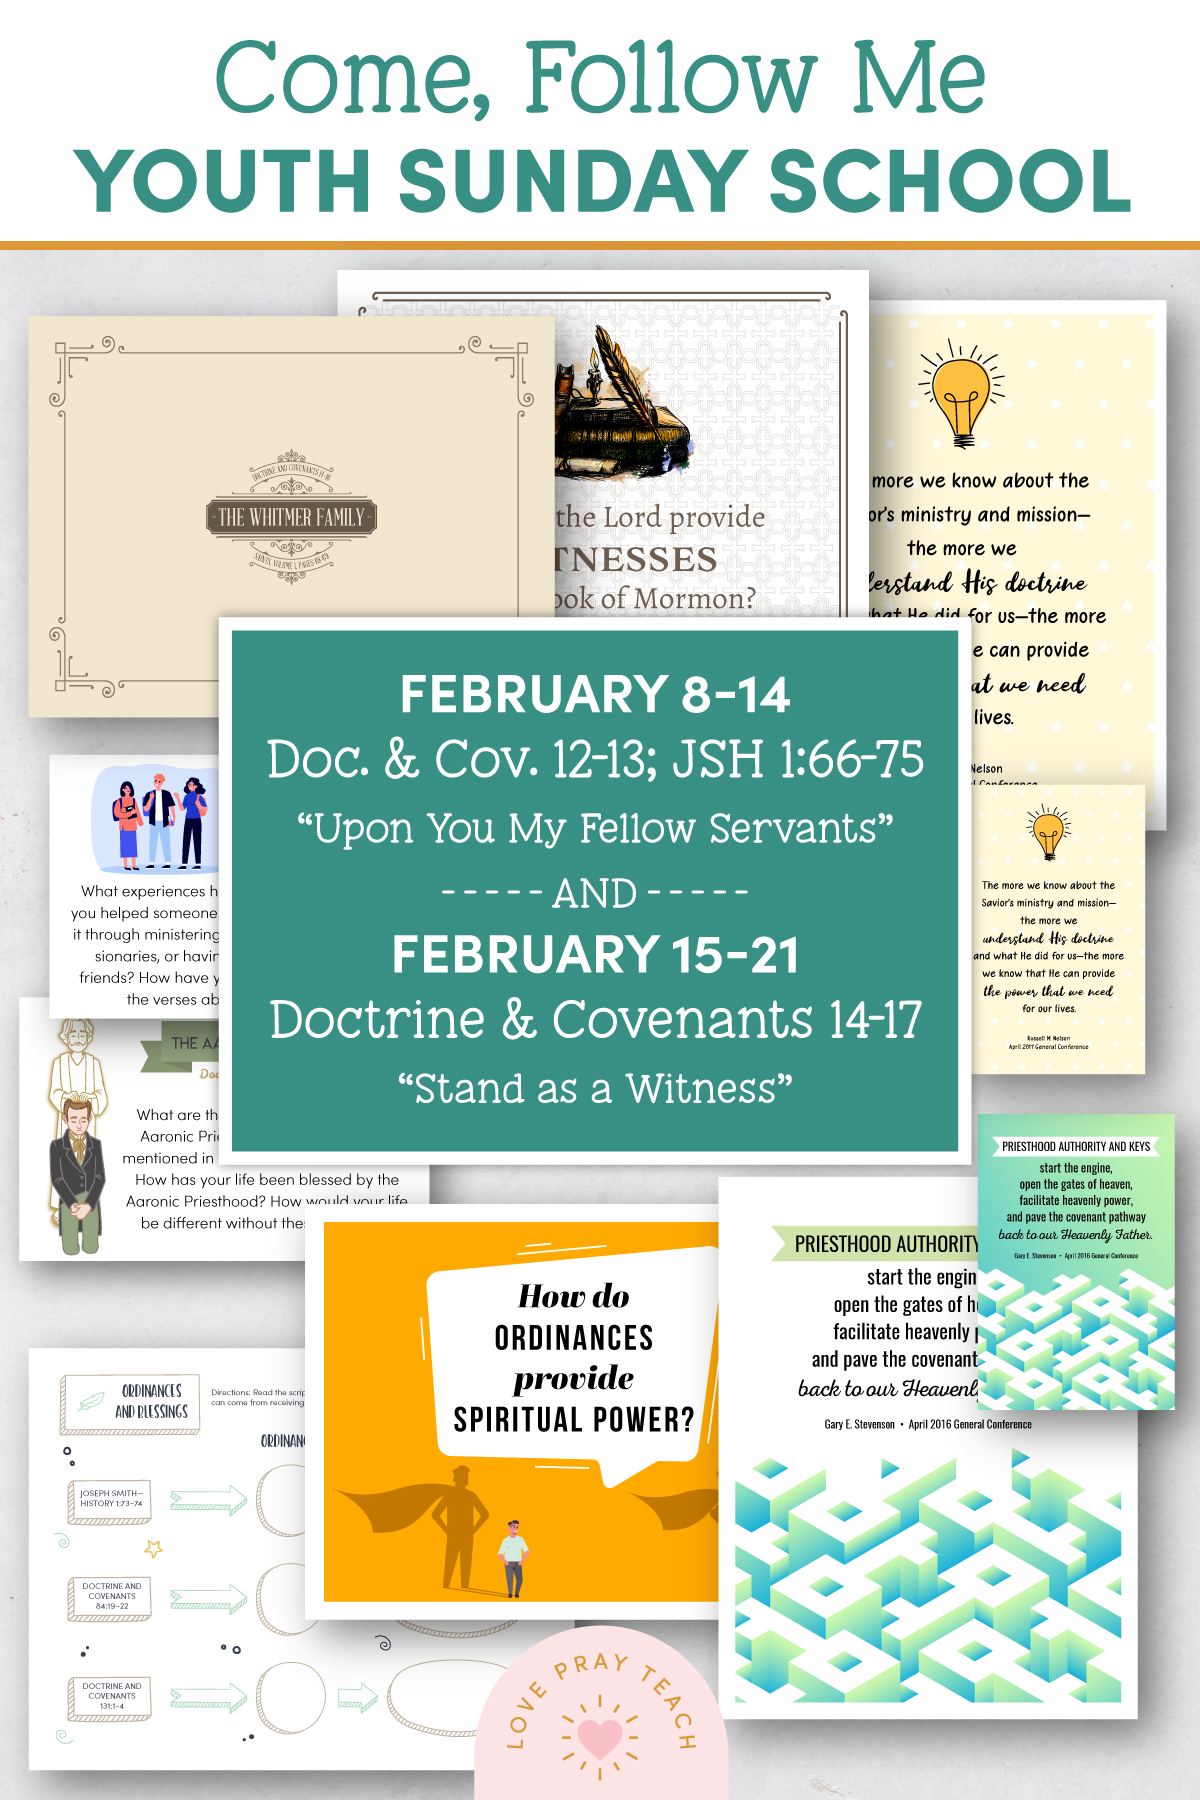 Youth Sunday School Come, Follow Me Doctrine and Covenants 2021 February 8-14 Doctrine and Covenants 12-13; Joseph History 1:66-75